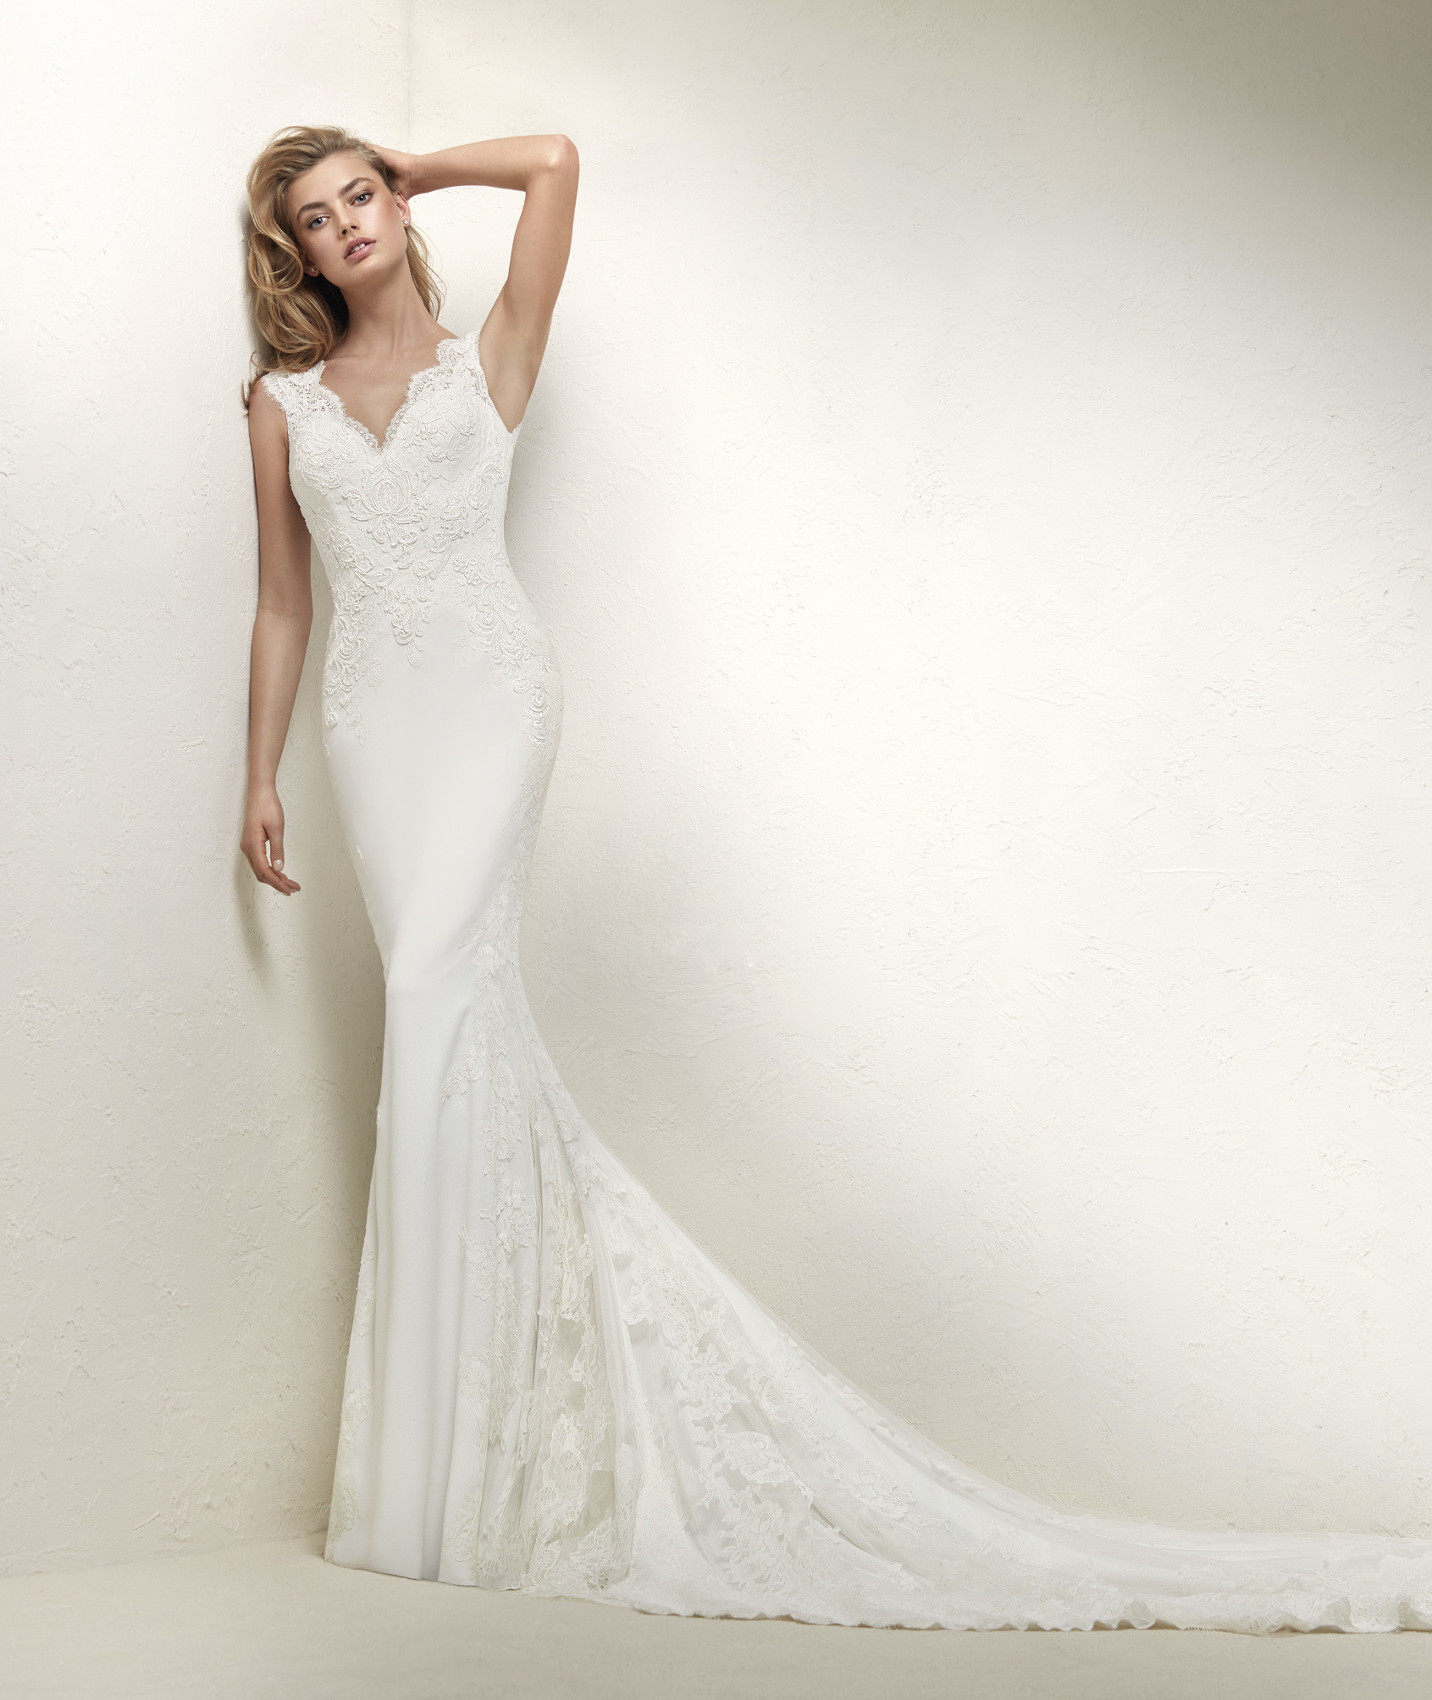 Drusila wedding dress